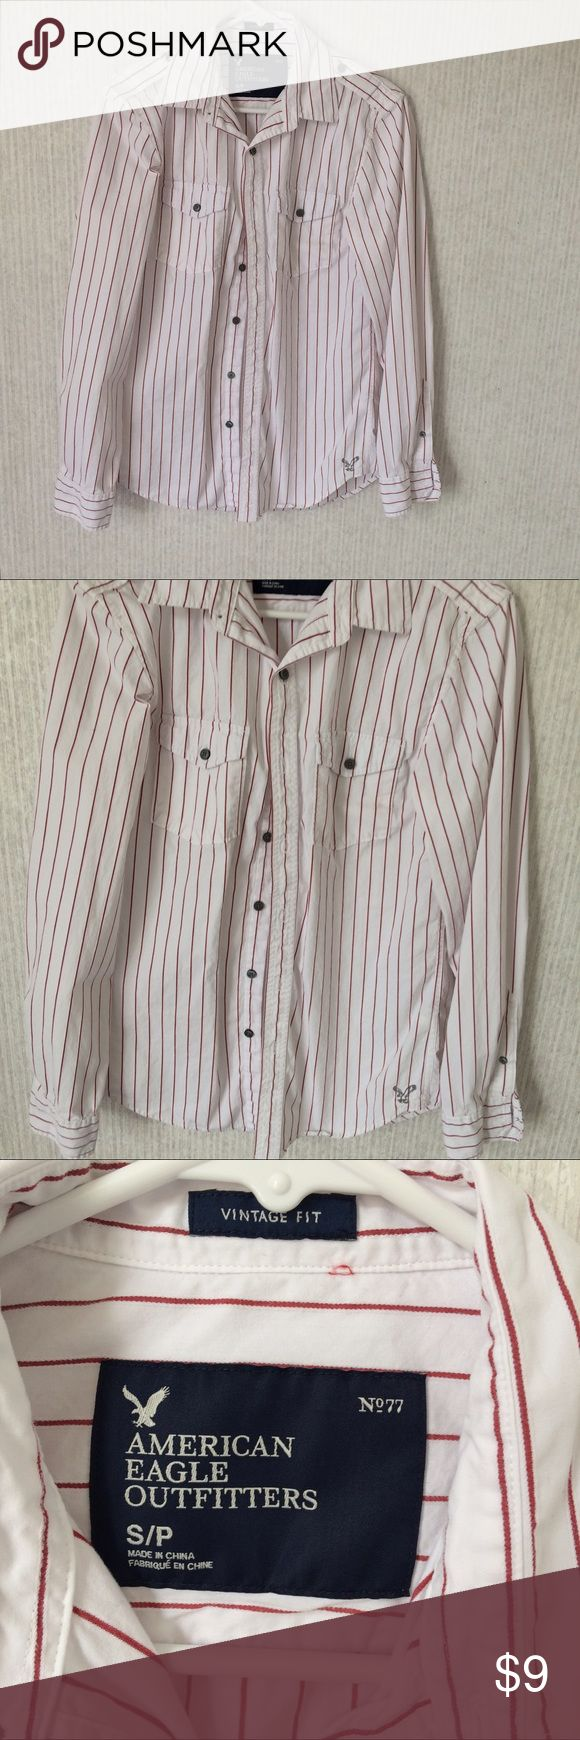 American eagle red/white striped button down shirt Stored in smoke free 🏡. Feel free to negotiate prices and bundle bundle bundle!!! American Eagle Outfitters Shirts Casual Button Down Shirts